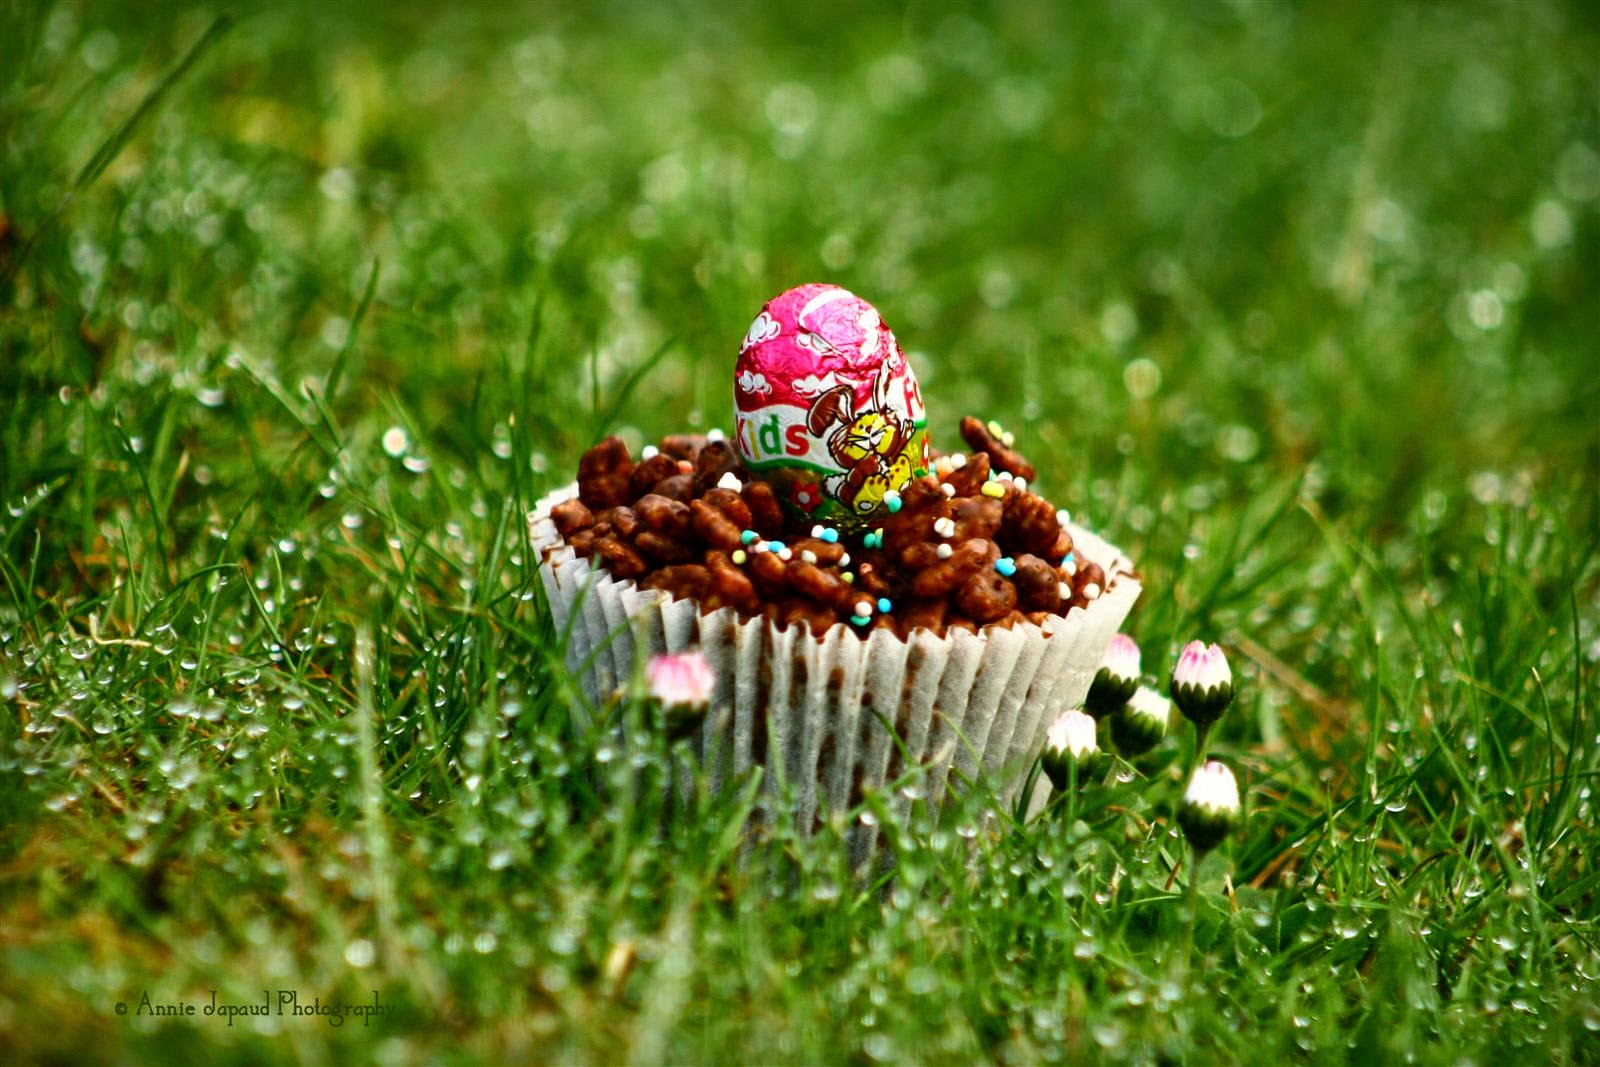 a rice krispie cake in the grass